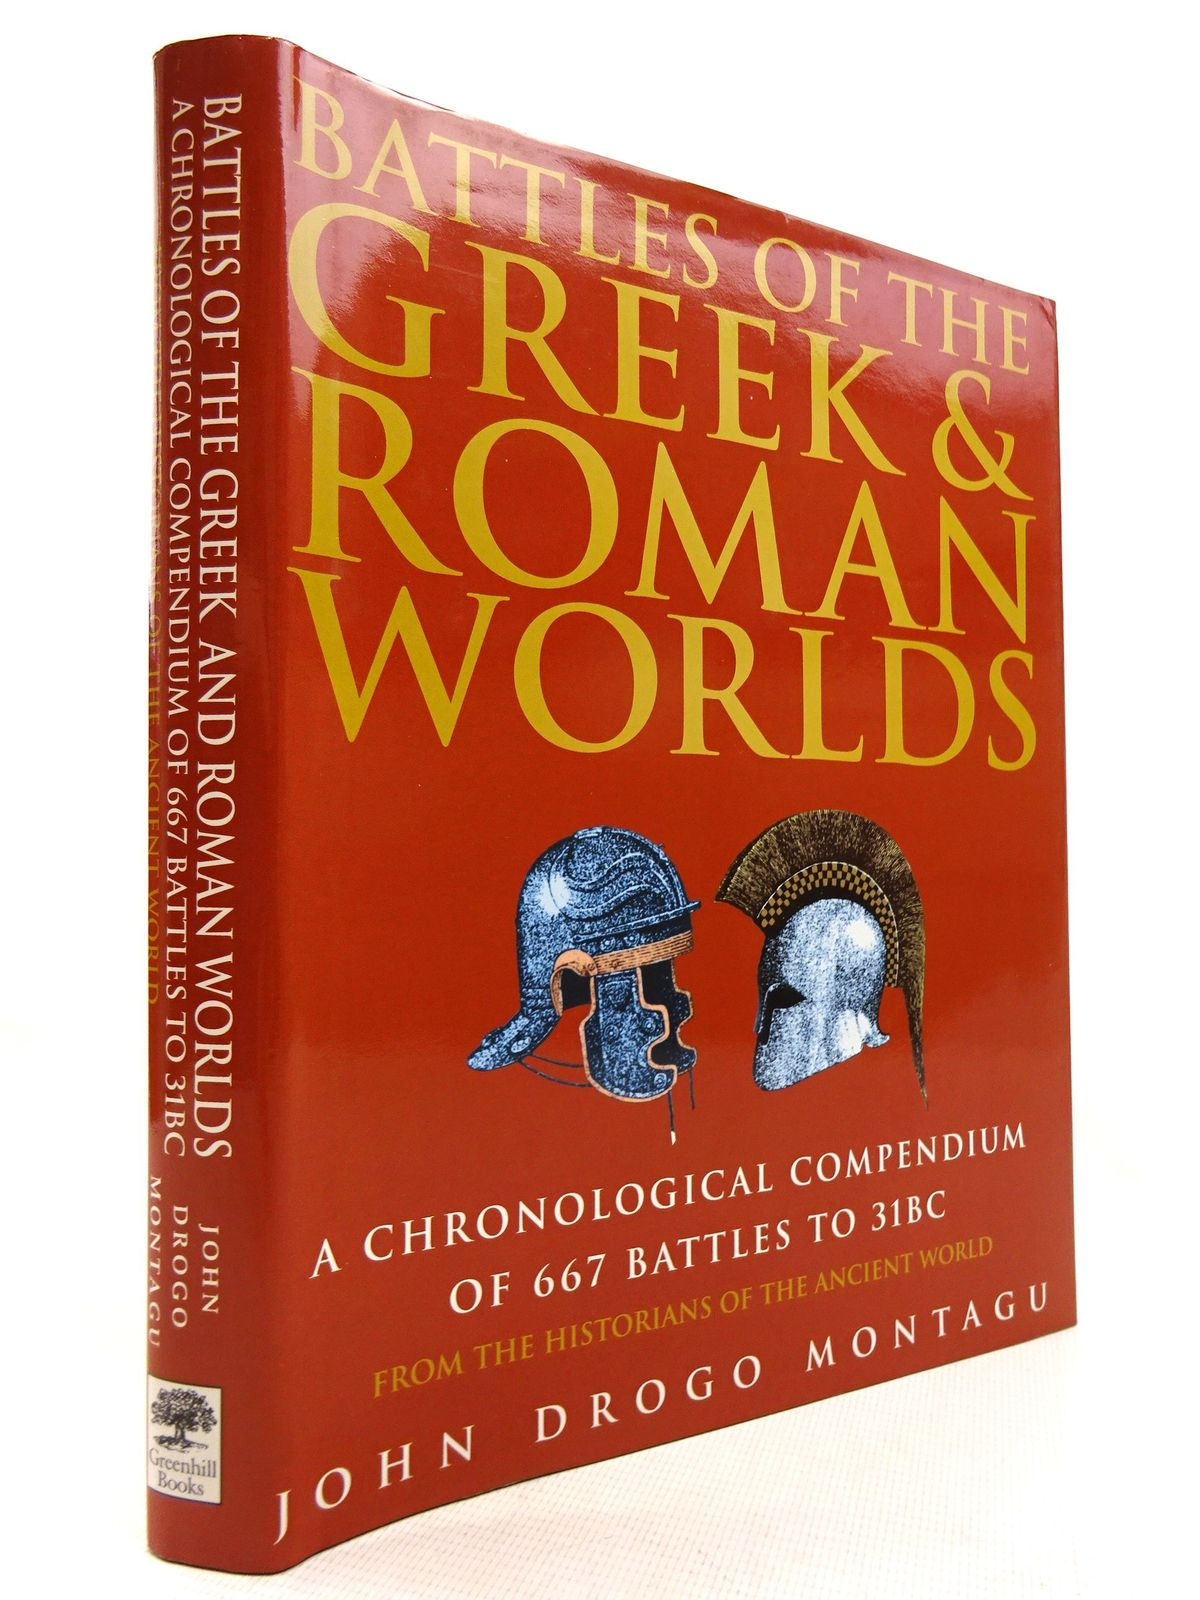 Photo of BATTLES OF THE GREEK AND ROMAN WORLDS written by Montagu, John Drogo published by Greenhill Books (STOCK CODE: 1816030)  for sale by Stella & Rose's Books